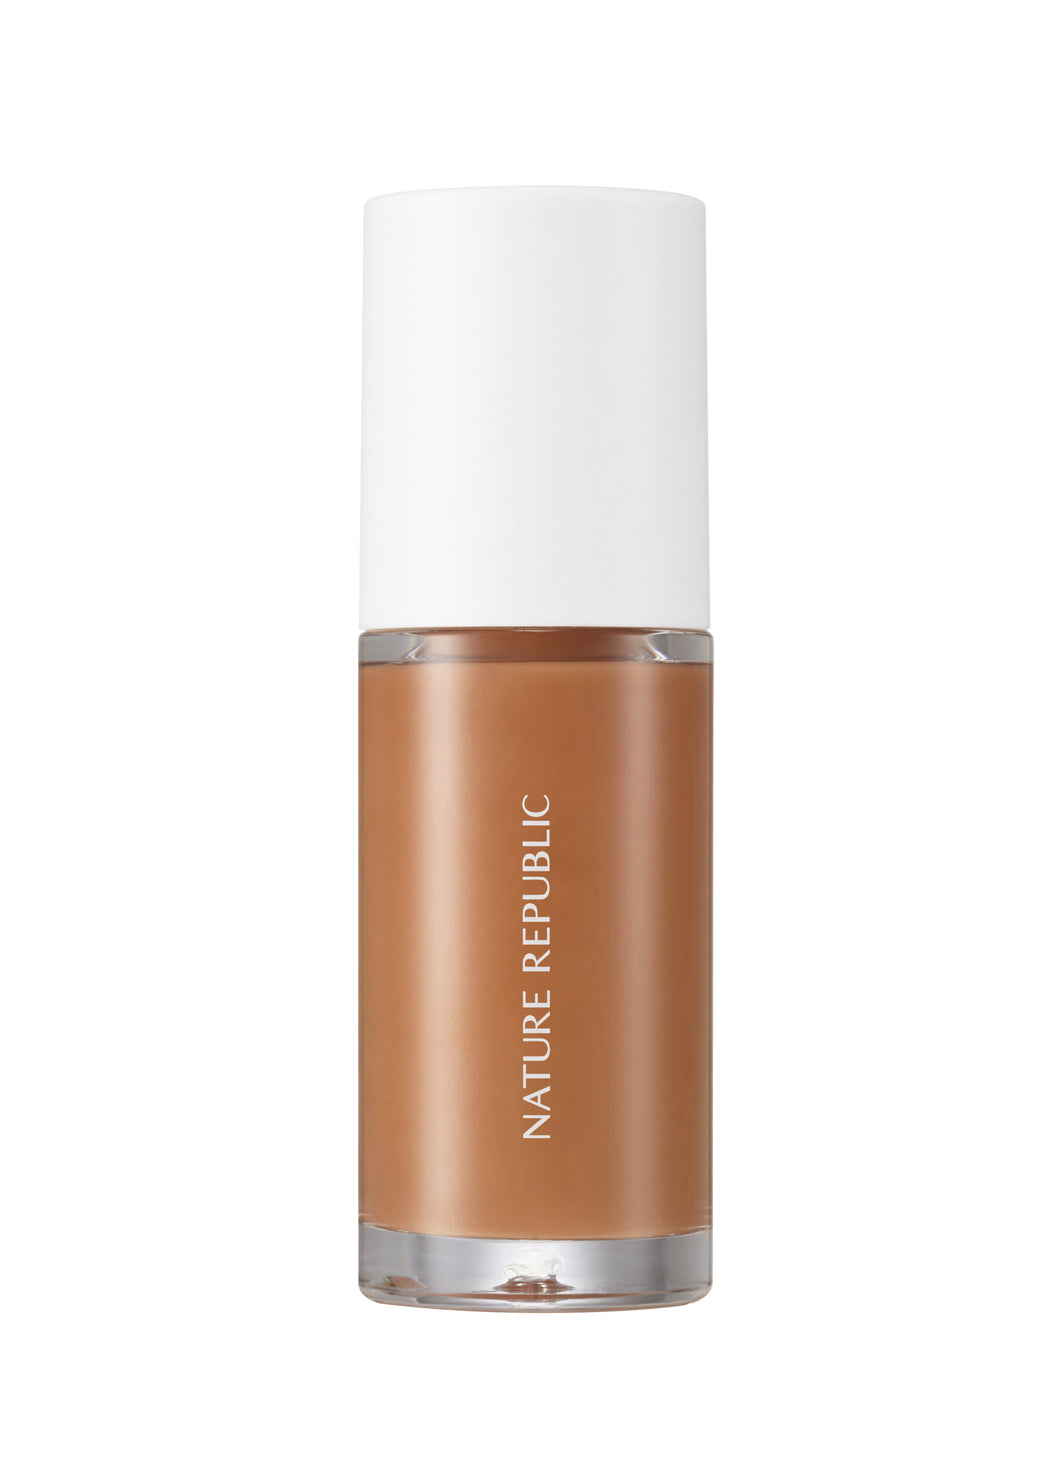 Provence Air Skin Fit One Day Lasting Foundation N45 Tan Brown